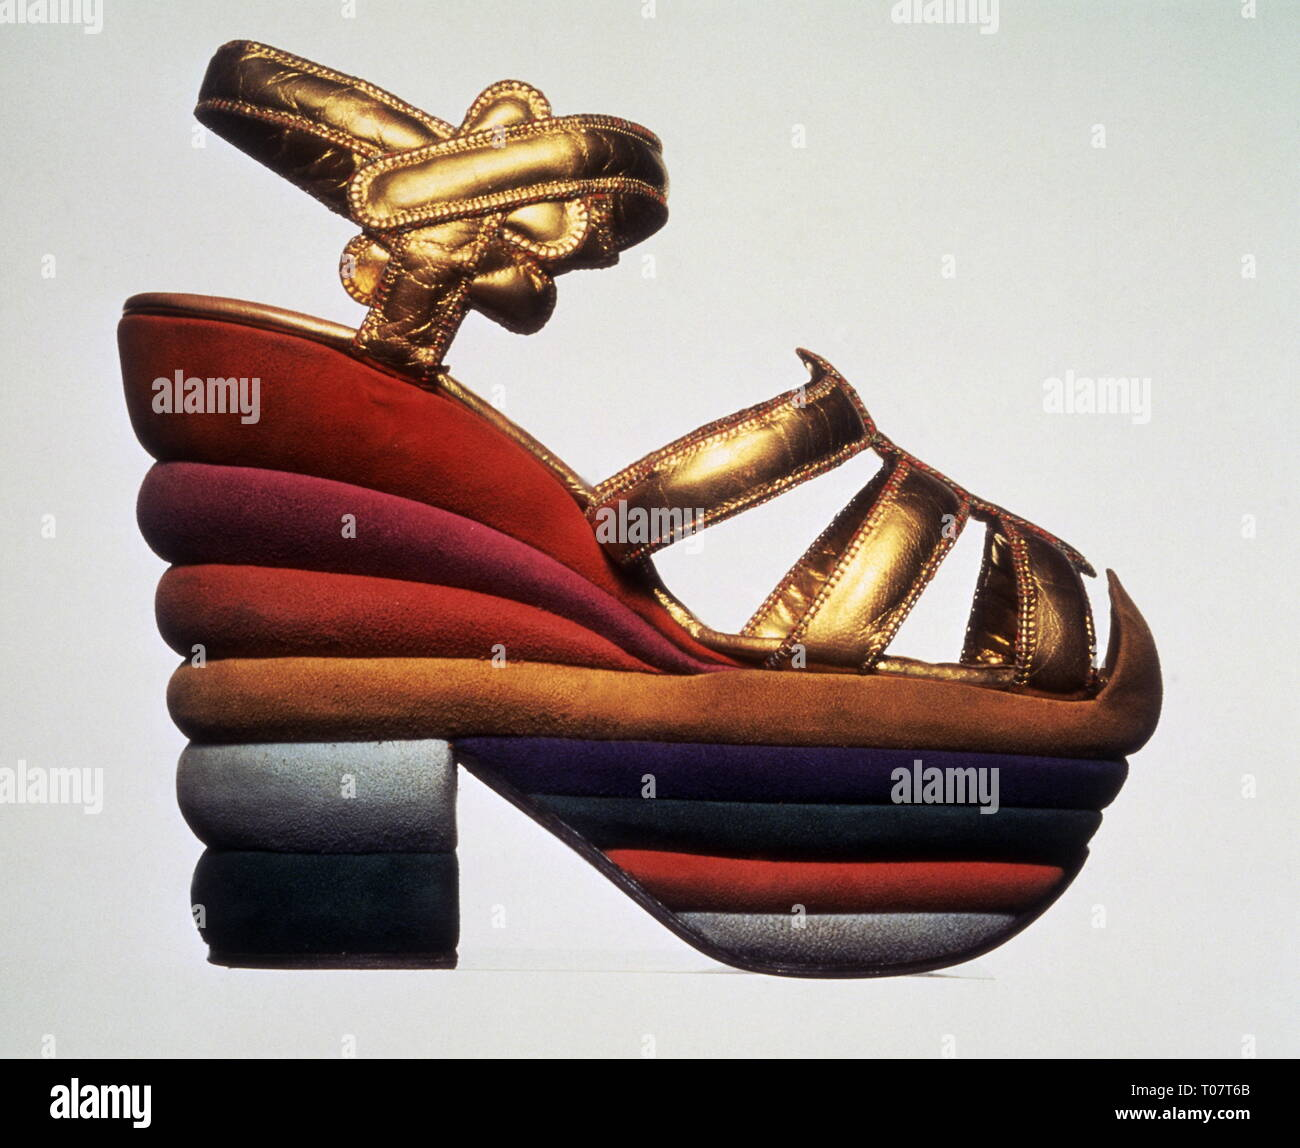 fashion, shoes, shoe fashion, version by Salvatore Ferragamo, edition, sandal in golden leather strips, suede, silksuede, with decorative stitching, 1938 - 1939, Additional-Rights-Clearance-Info-Not-Available - Stock Image